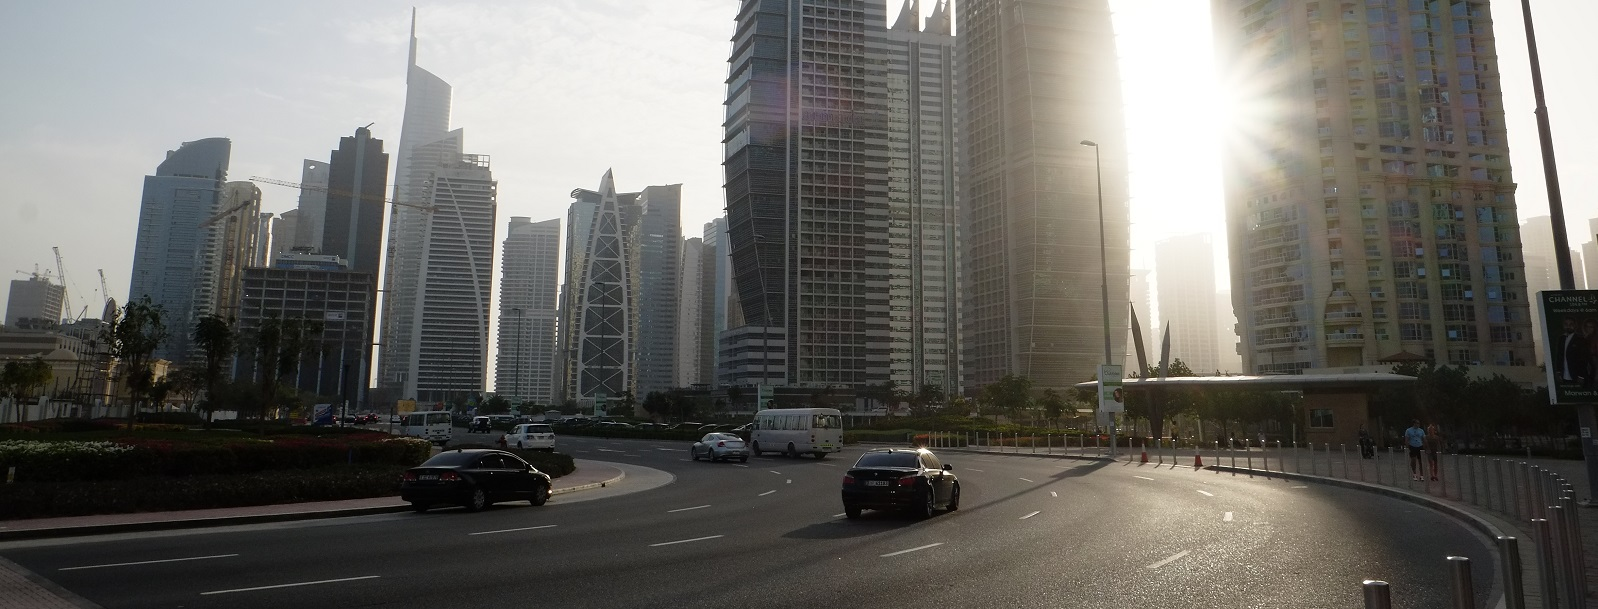 Real estate in Dubai - DSCF7211.jpg